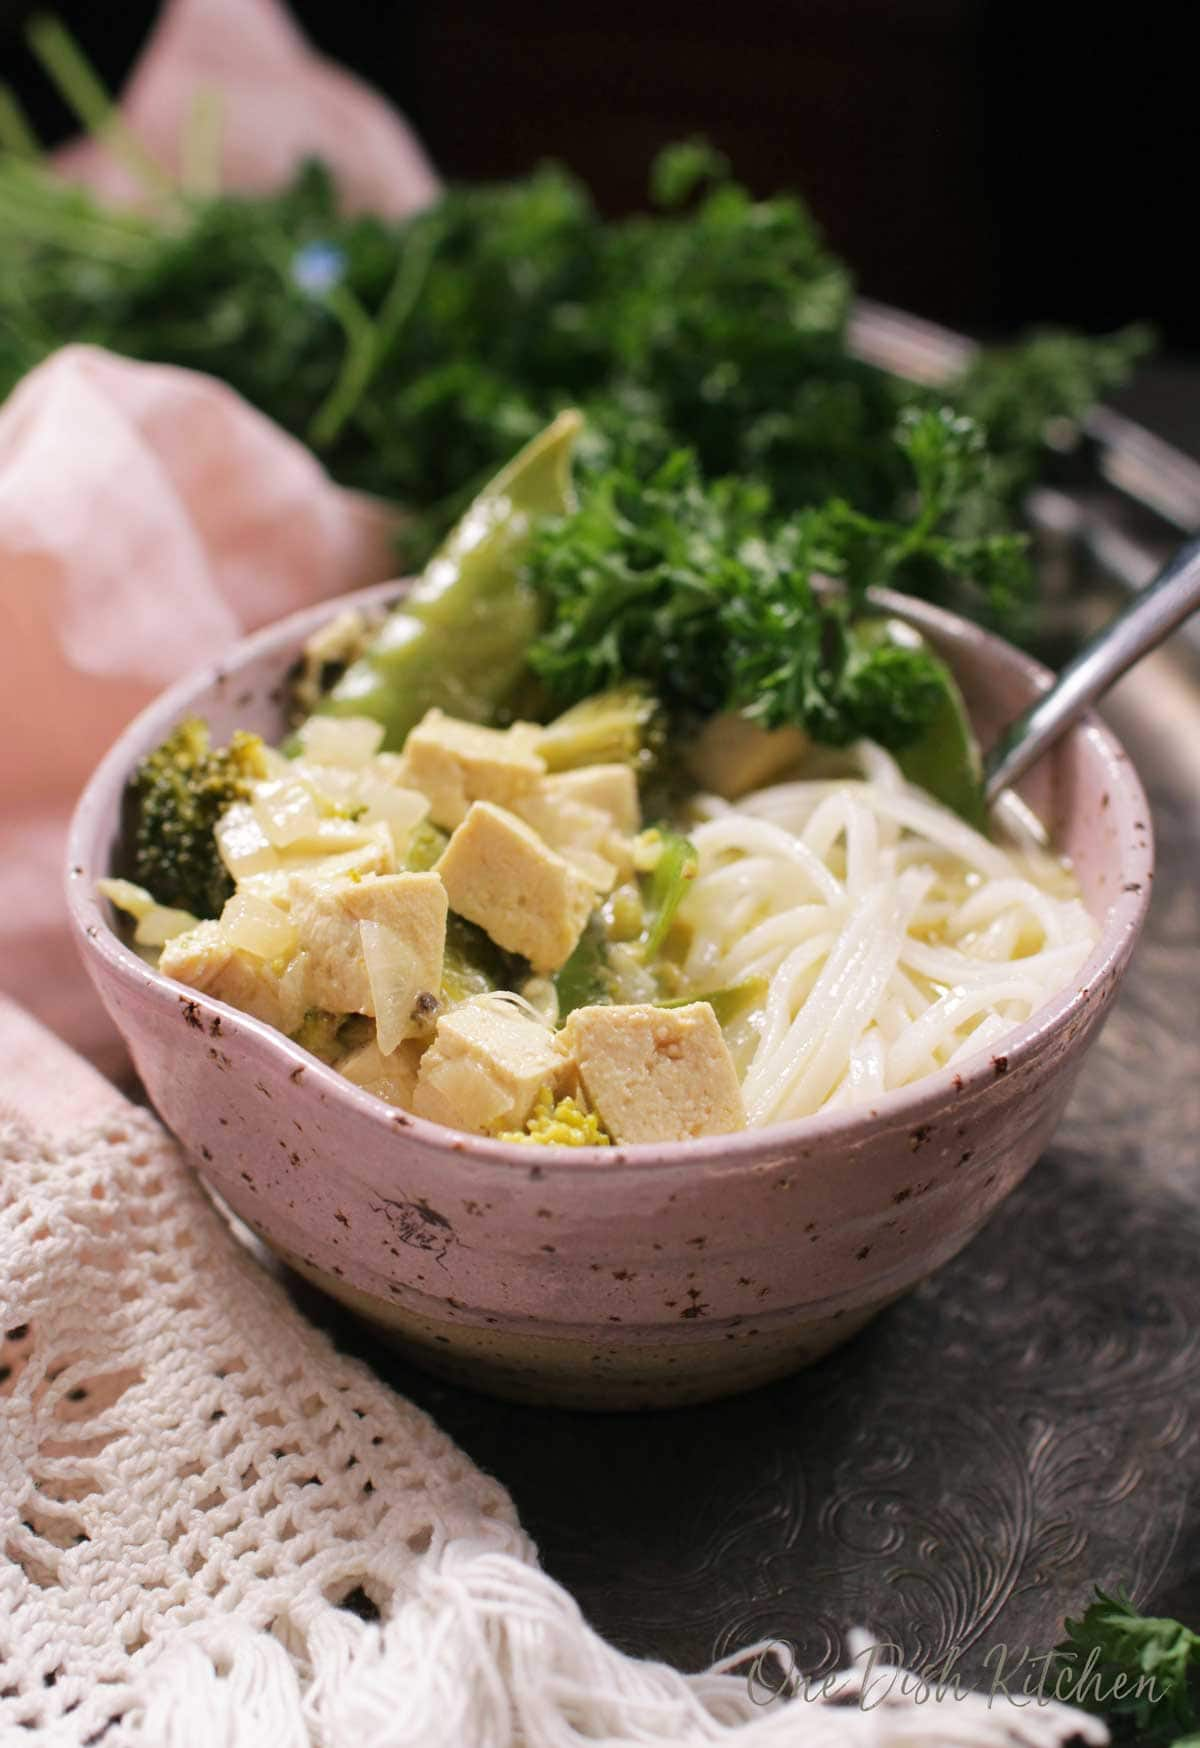 A closeup of a bowl of green curry with tofu and noodles on a metal tray  with parsley